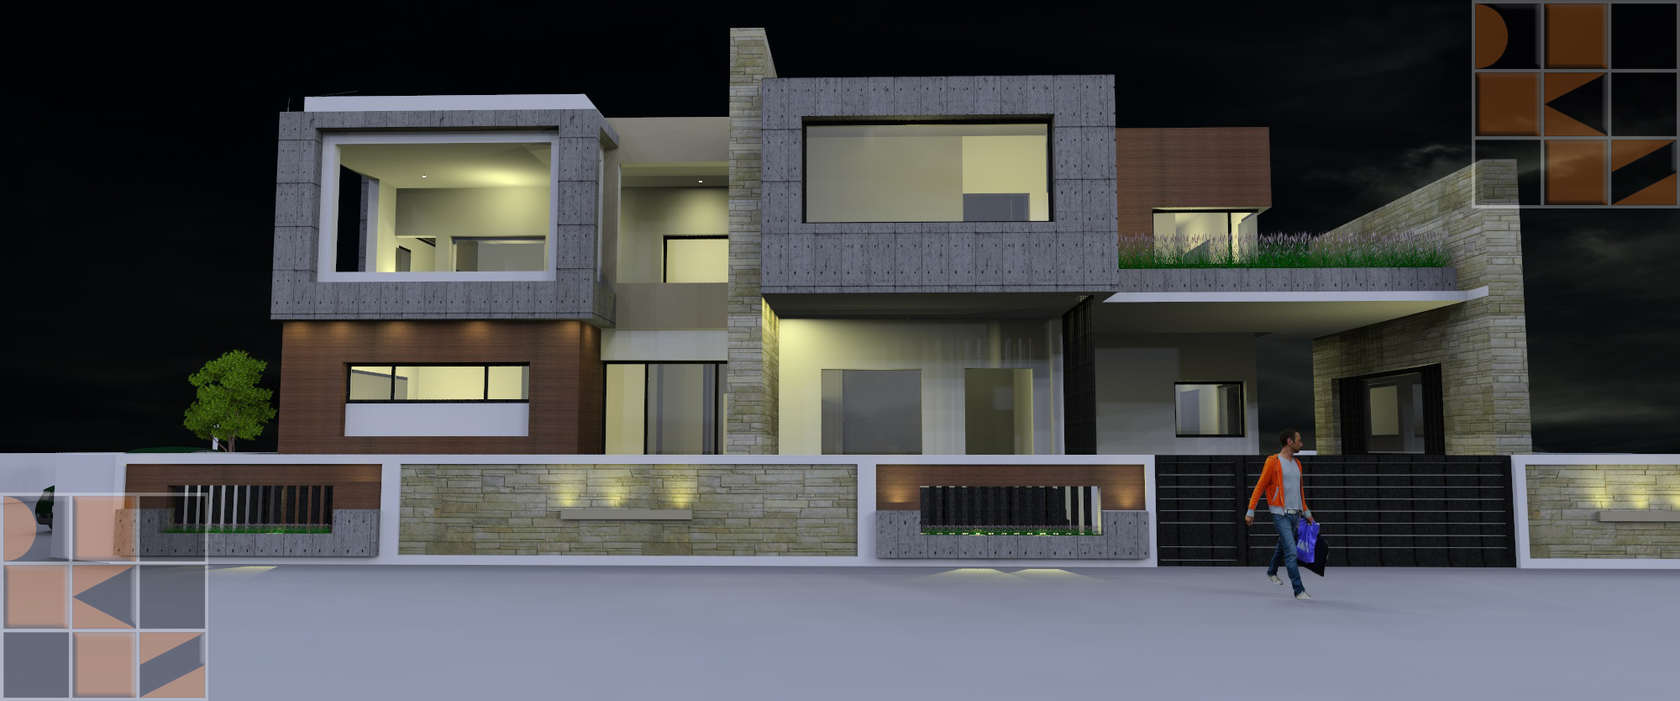 D sign k studio pvt ltd architects in chennai architizer for Architecture design companies in coimbatore